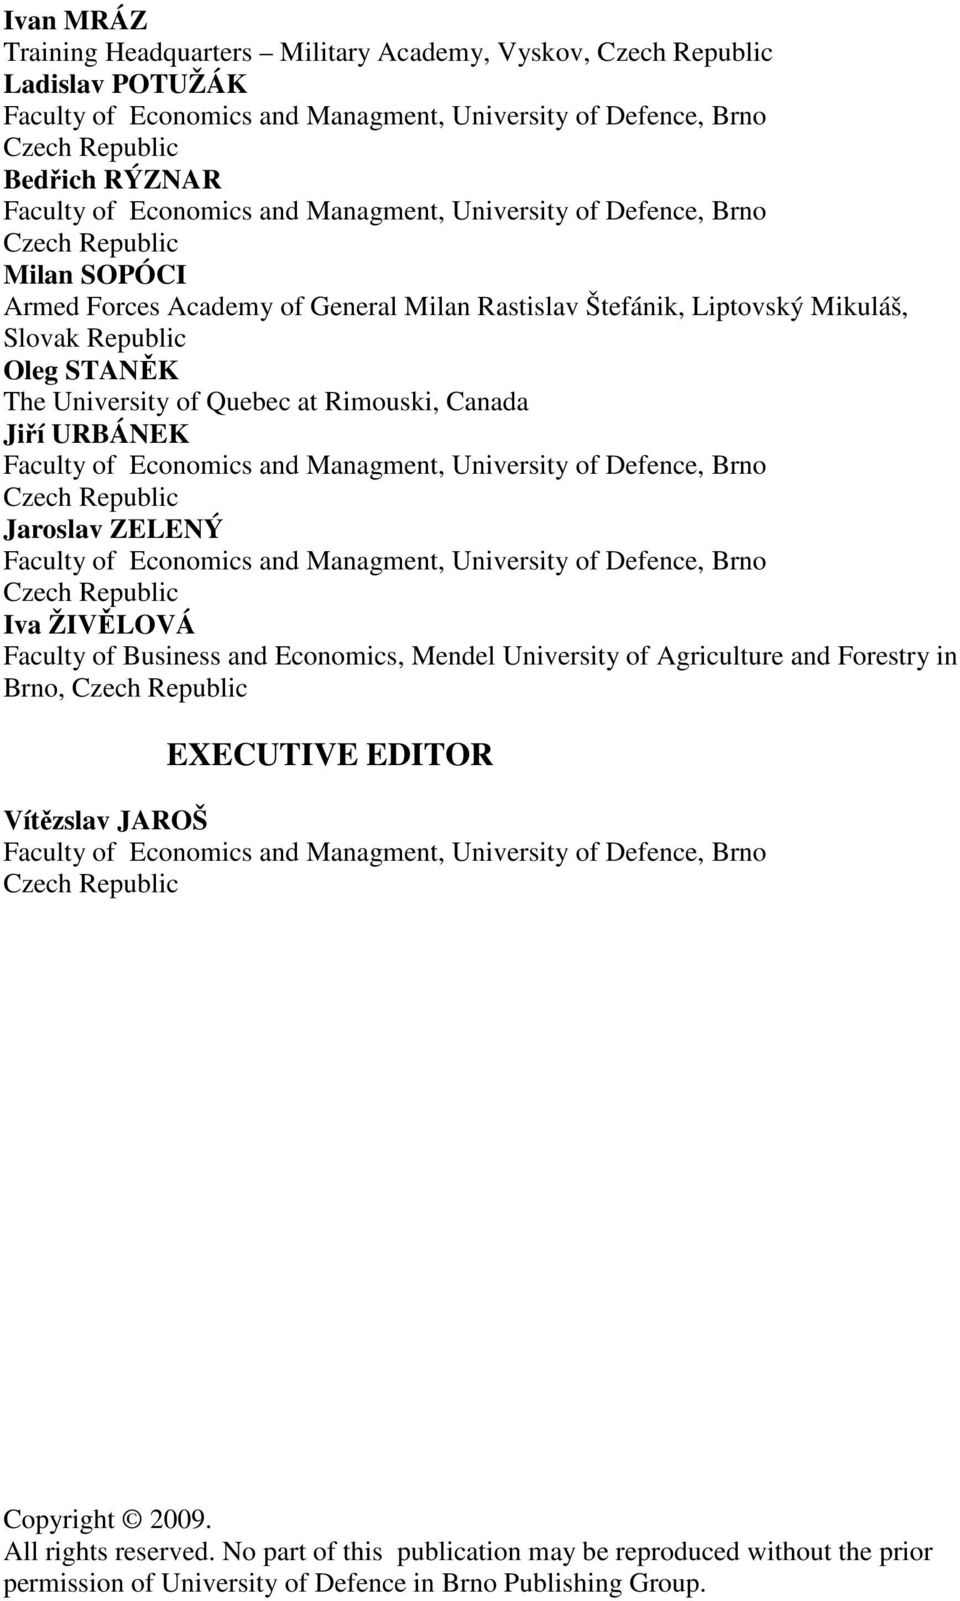 University of Quebec at Rimouski, Canada Jiří URBÁNEK Faculty of Economics and Managment, University of Defence, Brno Czech Republic Jaroslav ZELENÝ Faculty of Economics and Managment, University of